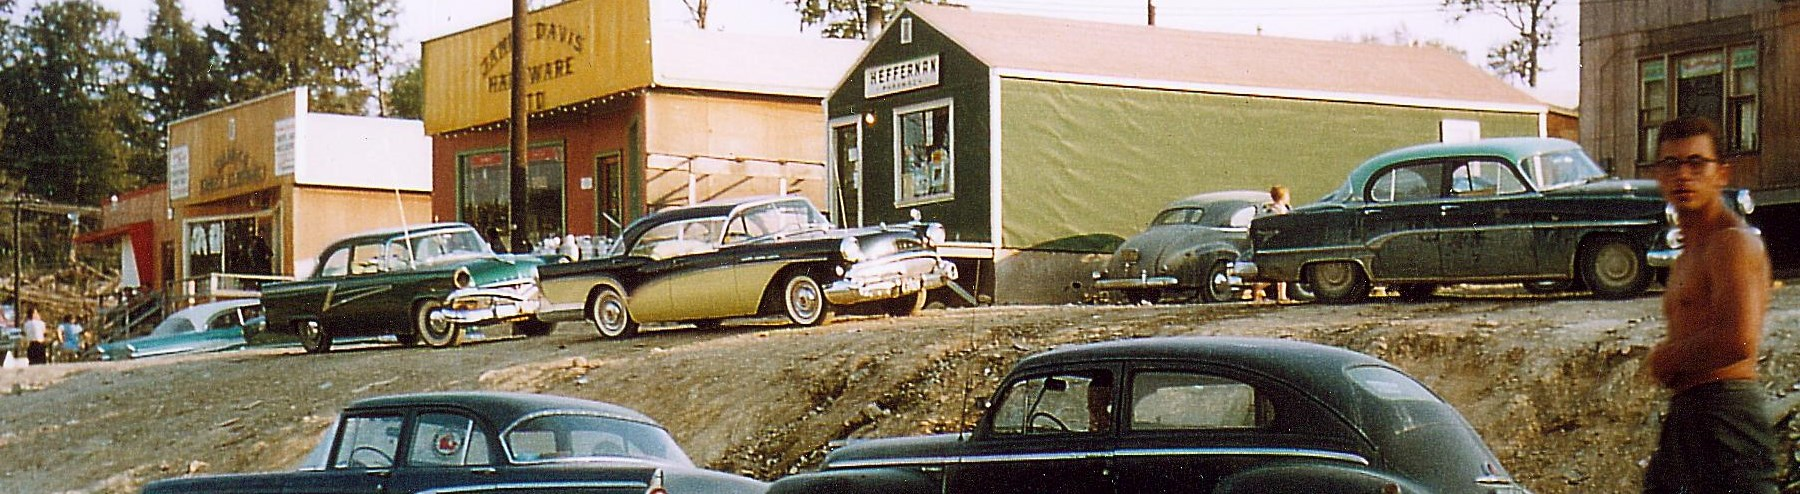 picture of early temporary buildings and cars in elliot lake downtown circa 1956